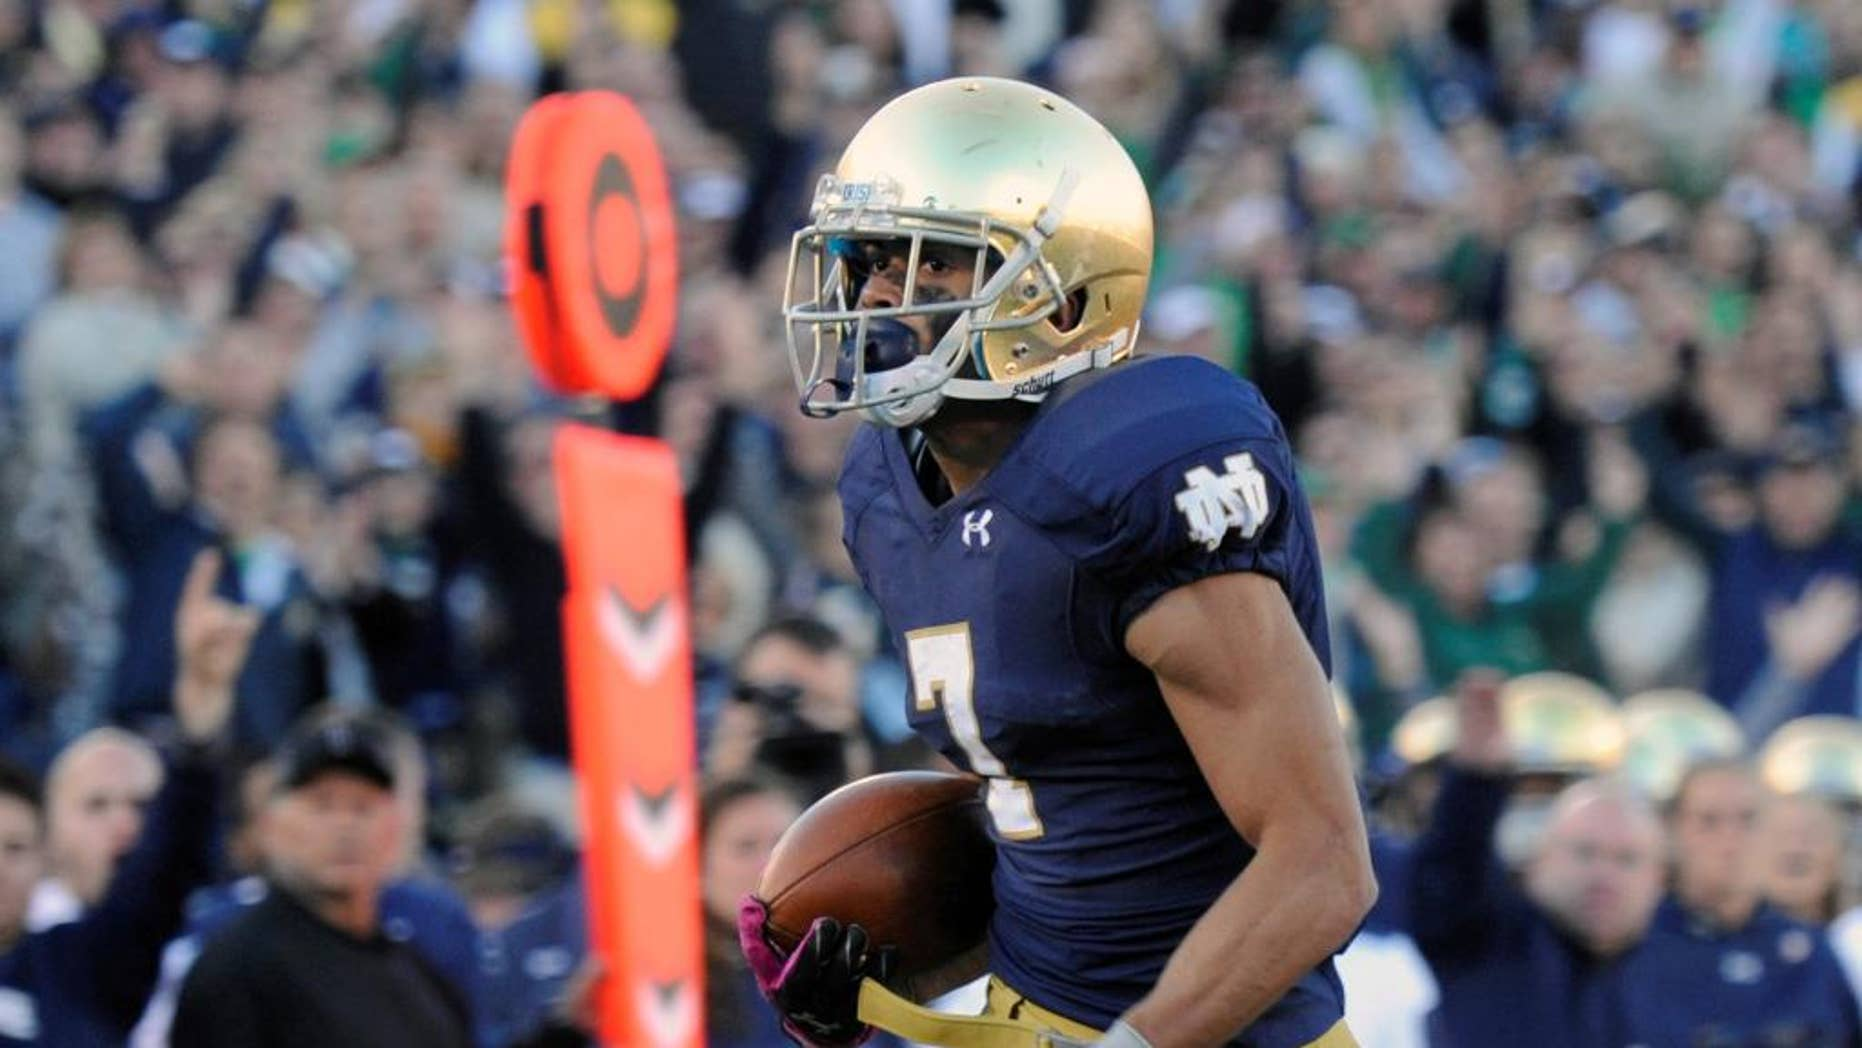 Notre Dame wide receiver Will Fuller heads towards the endzone for a touchdown in the second half of an NCAA college football game against North Carolina, Saturday, Oct. 11, 2014, in South Bend, Ind. (AP Photo/Joe Raymond)